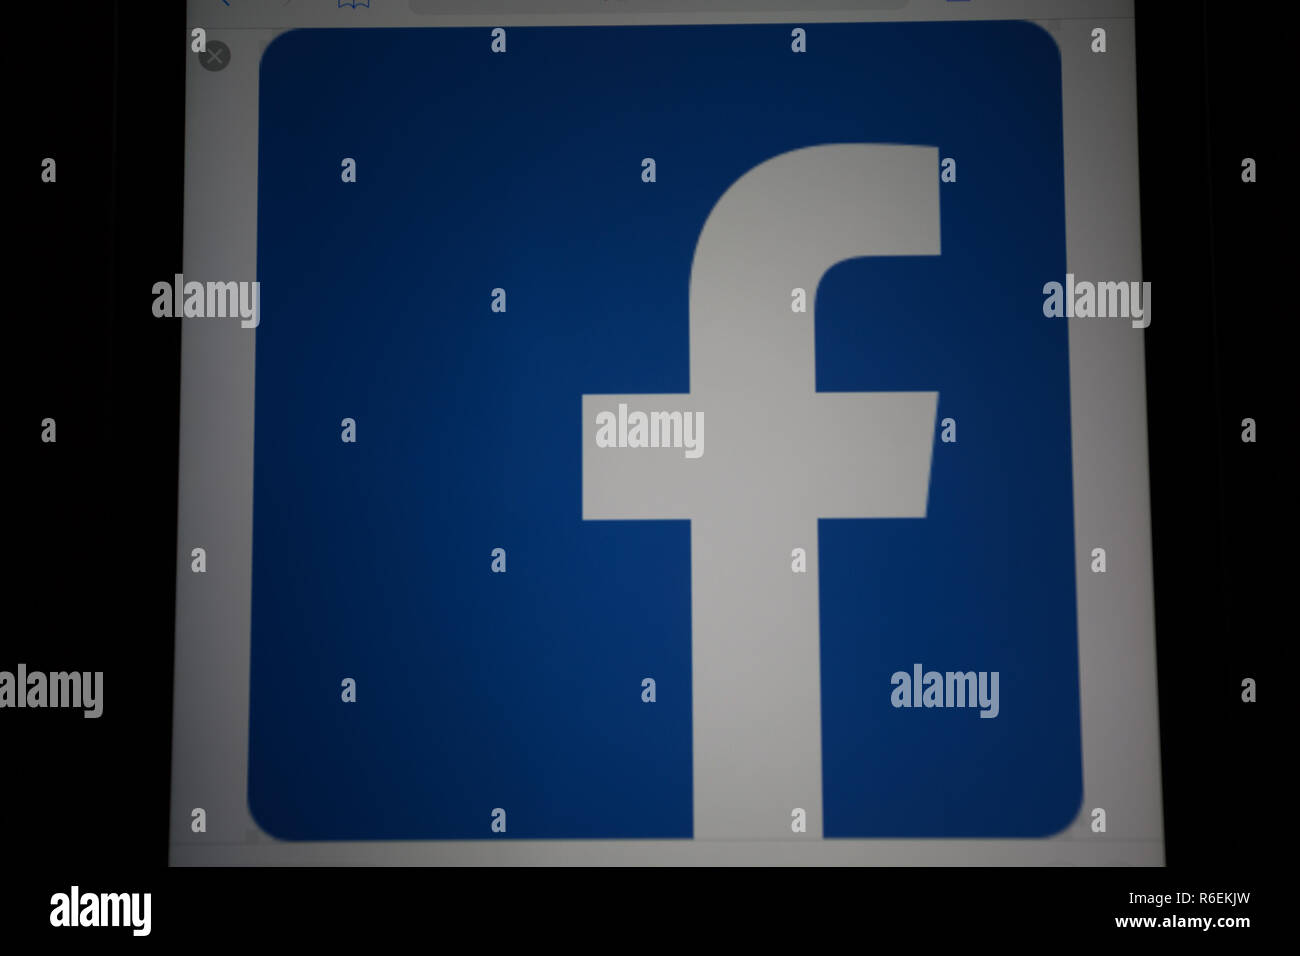 Facebook, online social media and social networking service company, logo is shown on Apple iPad Air device screen - Stock Image